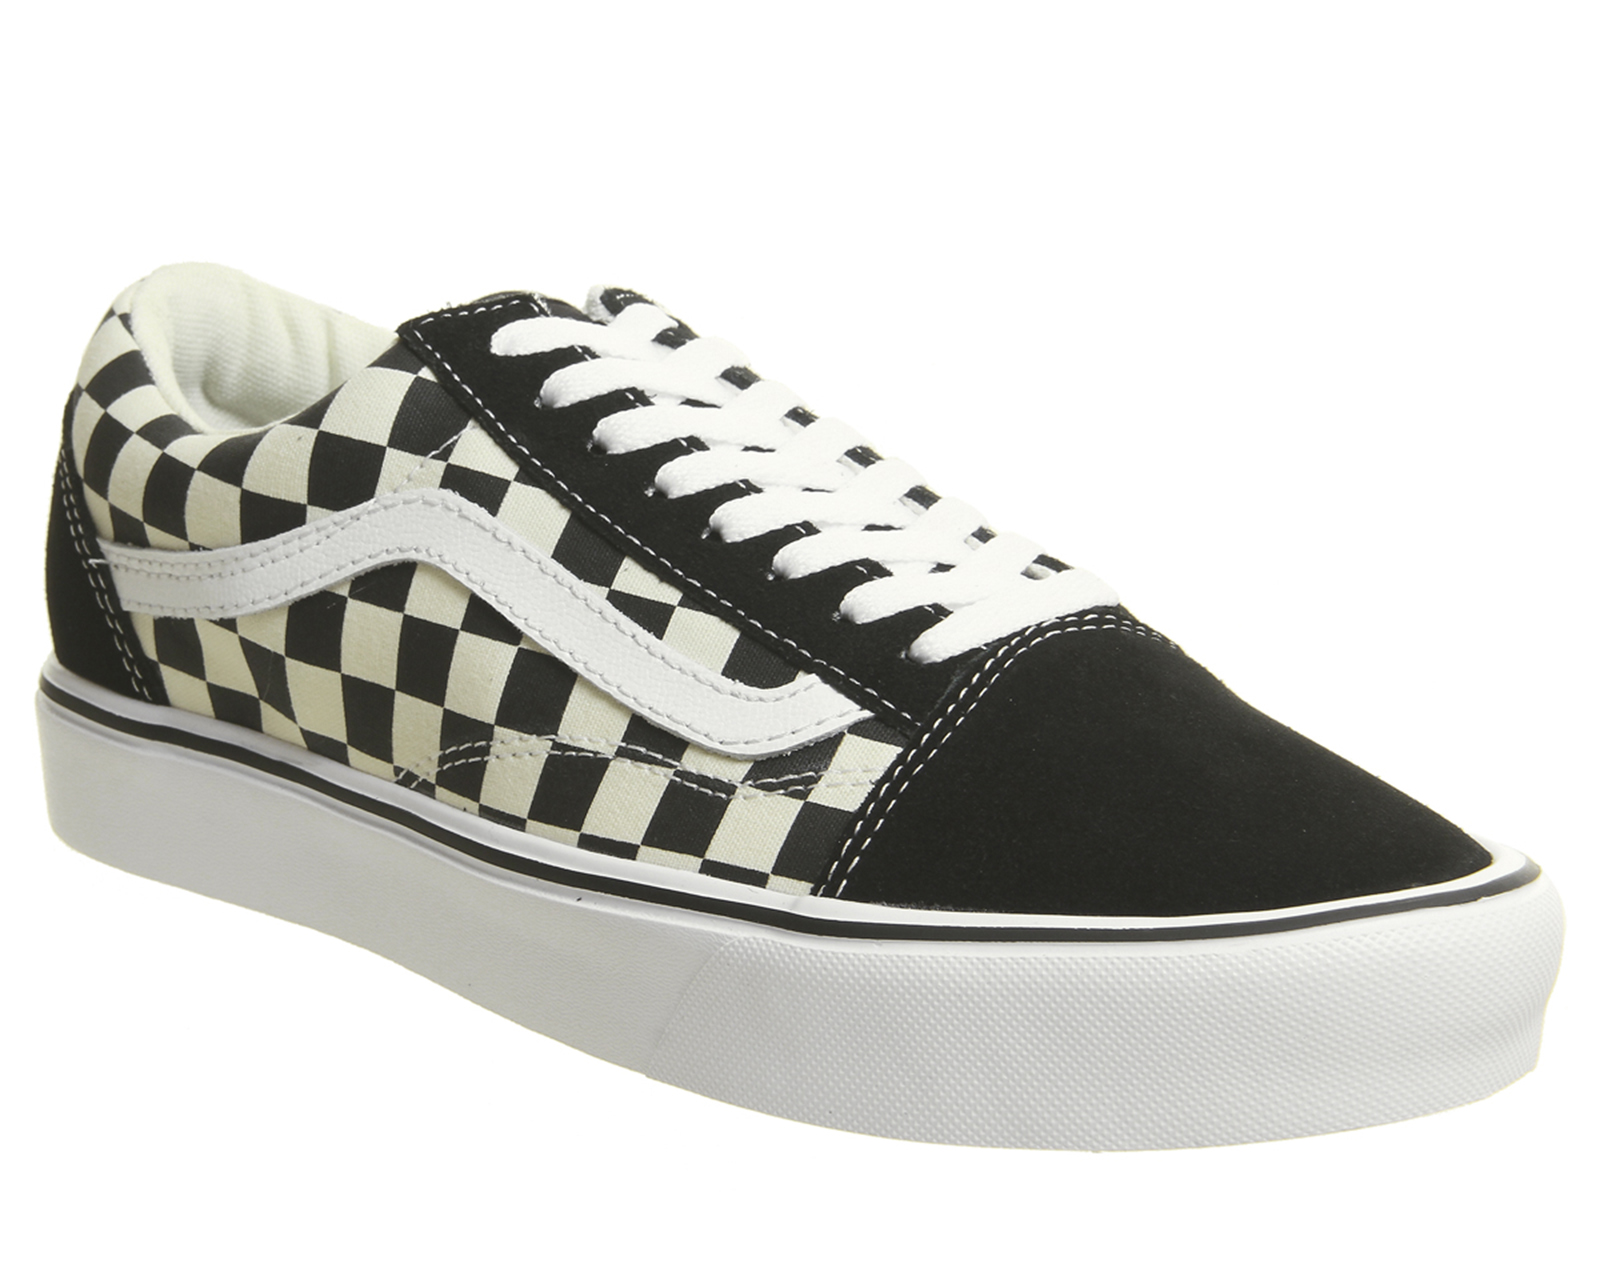 70cc6c846f Sentinel Mens Vans Old Skool Lite Black White Checkerboard Trainers Shoes